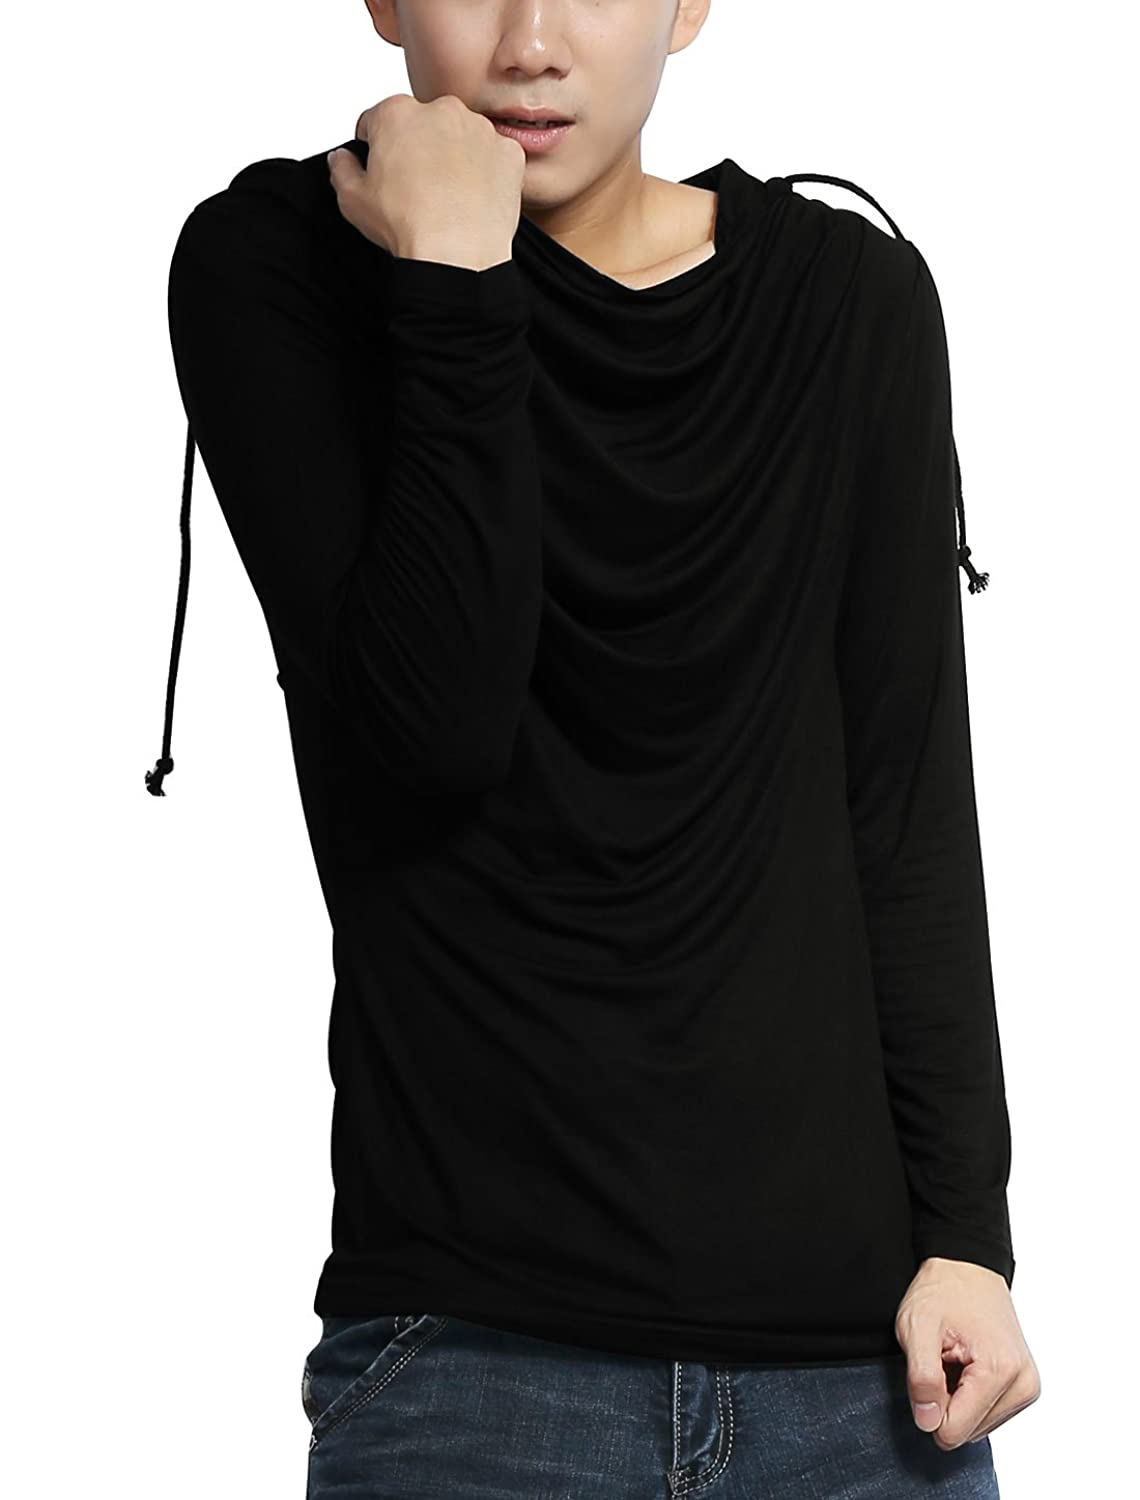 Allegra K Men Cowl Neck Long Sleeves Drawstring Hooded Sweatshirt